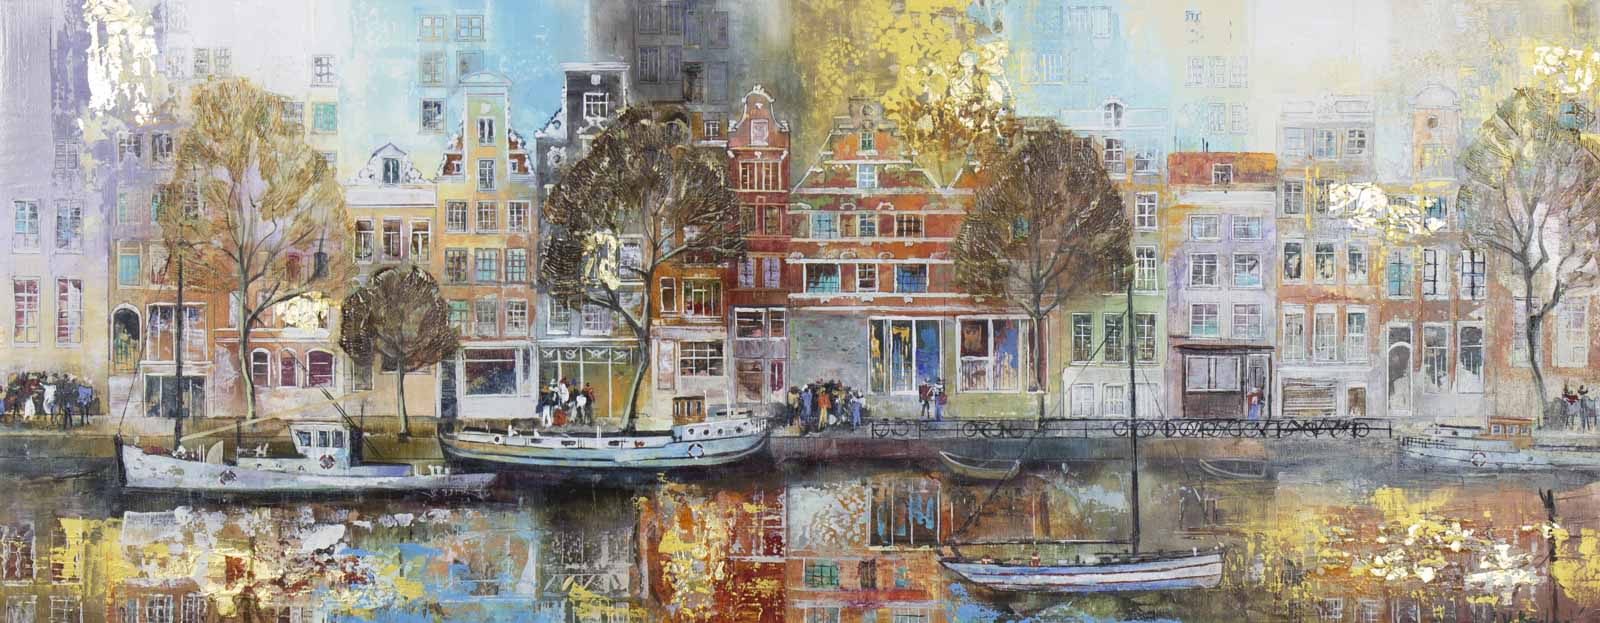 Colourful Amsterdam